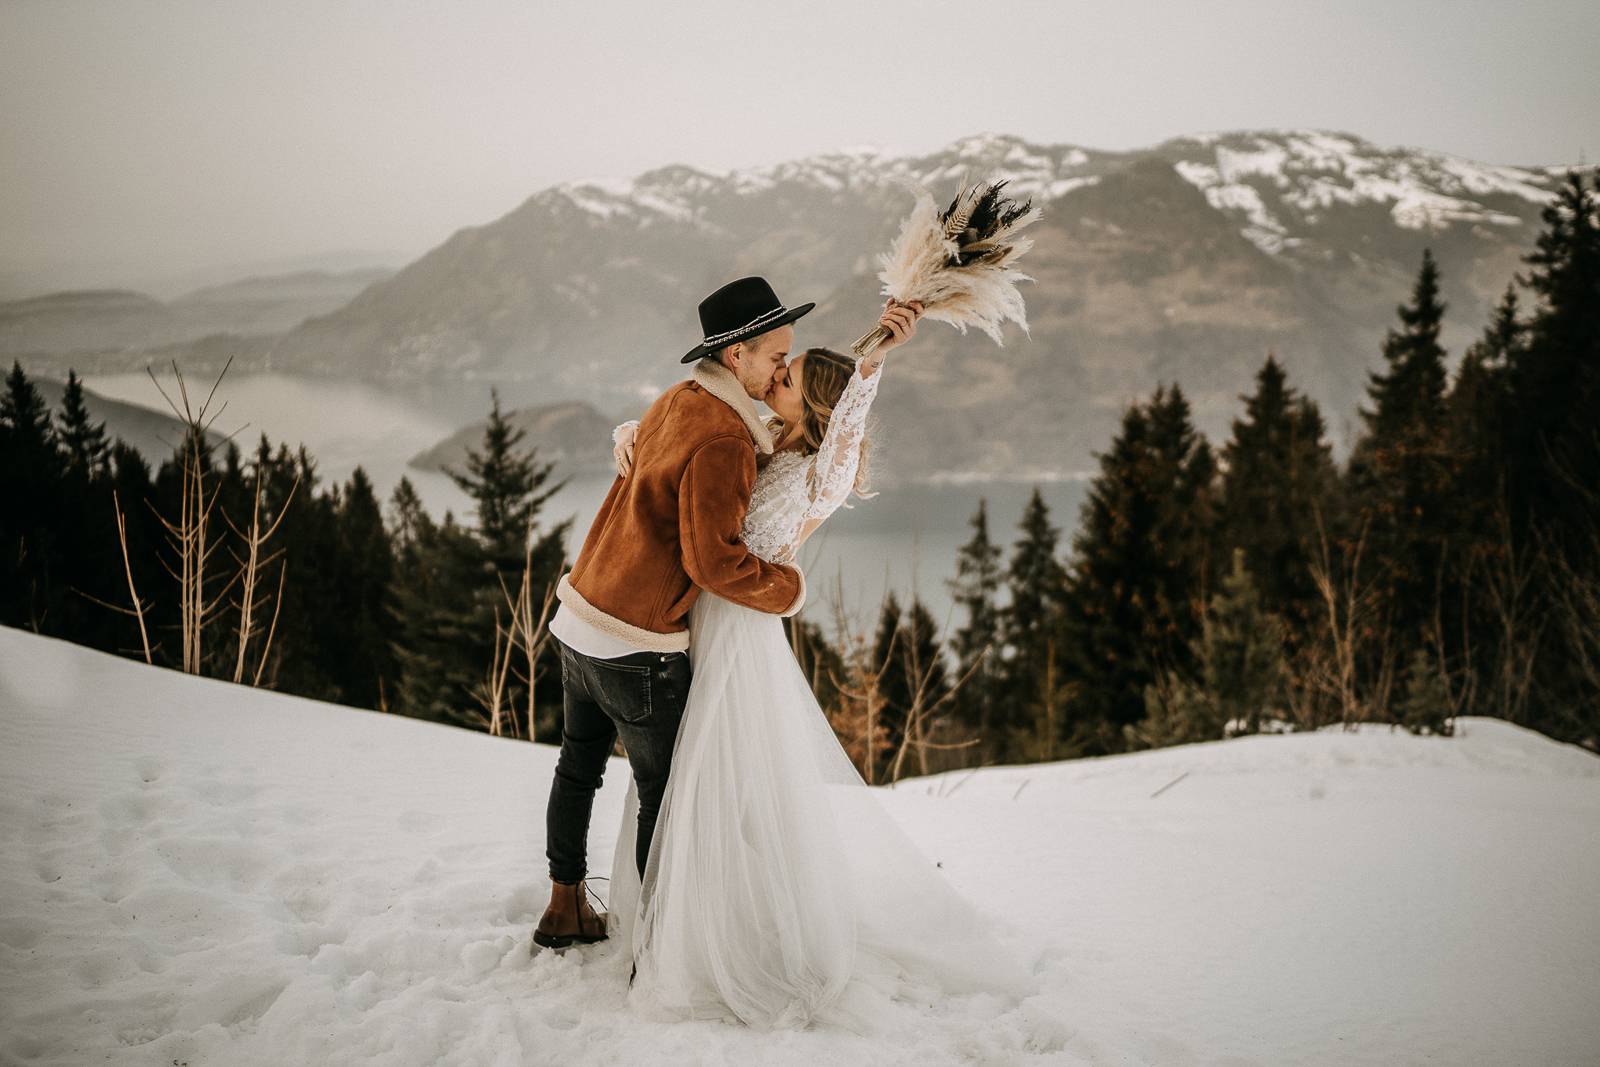 Winter Love in the Swiss Alps by André Schmid